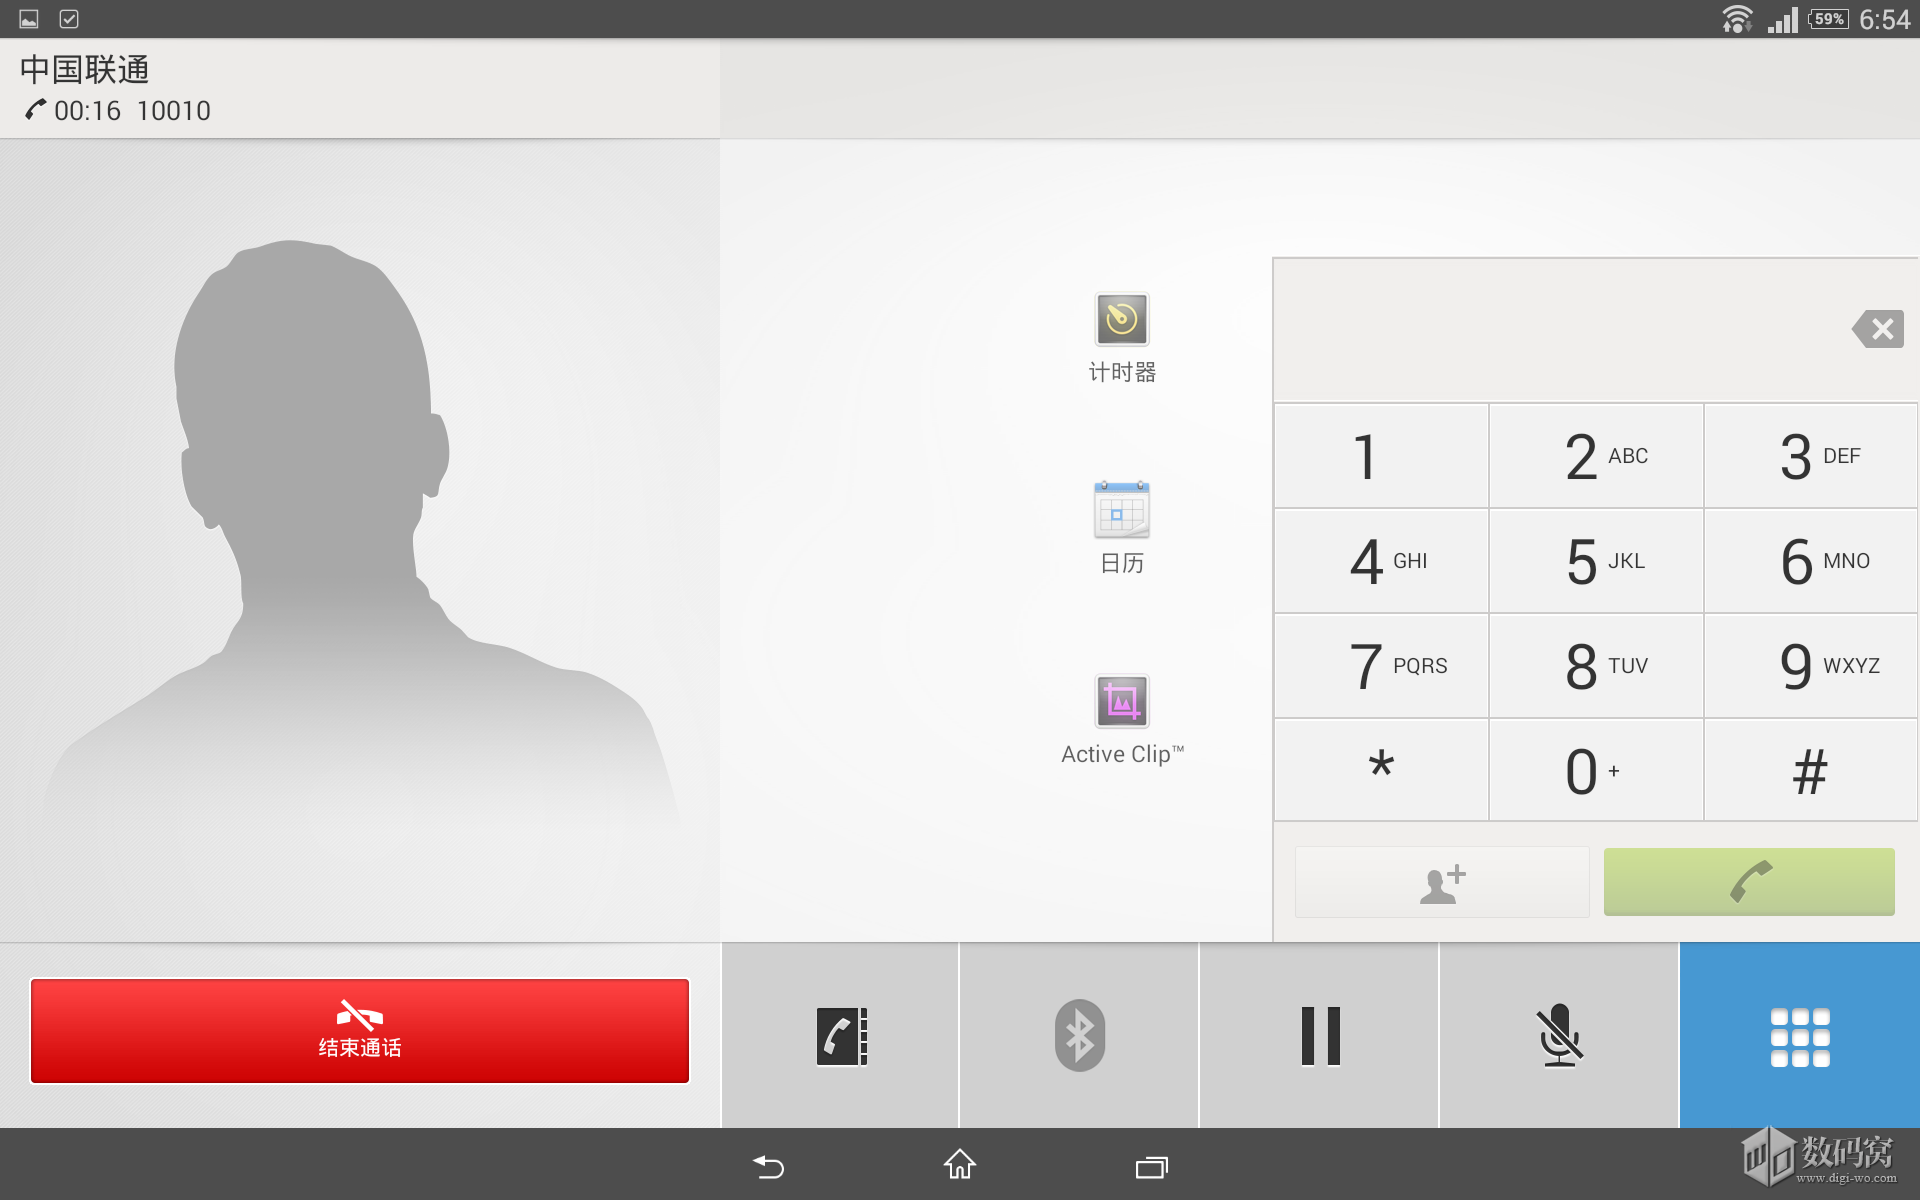 Xperia Z2 Tablet GSM calling feature